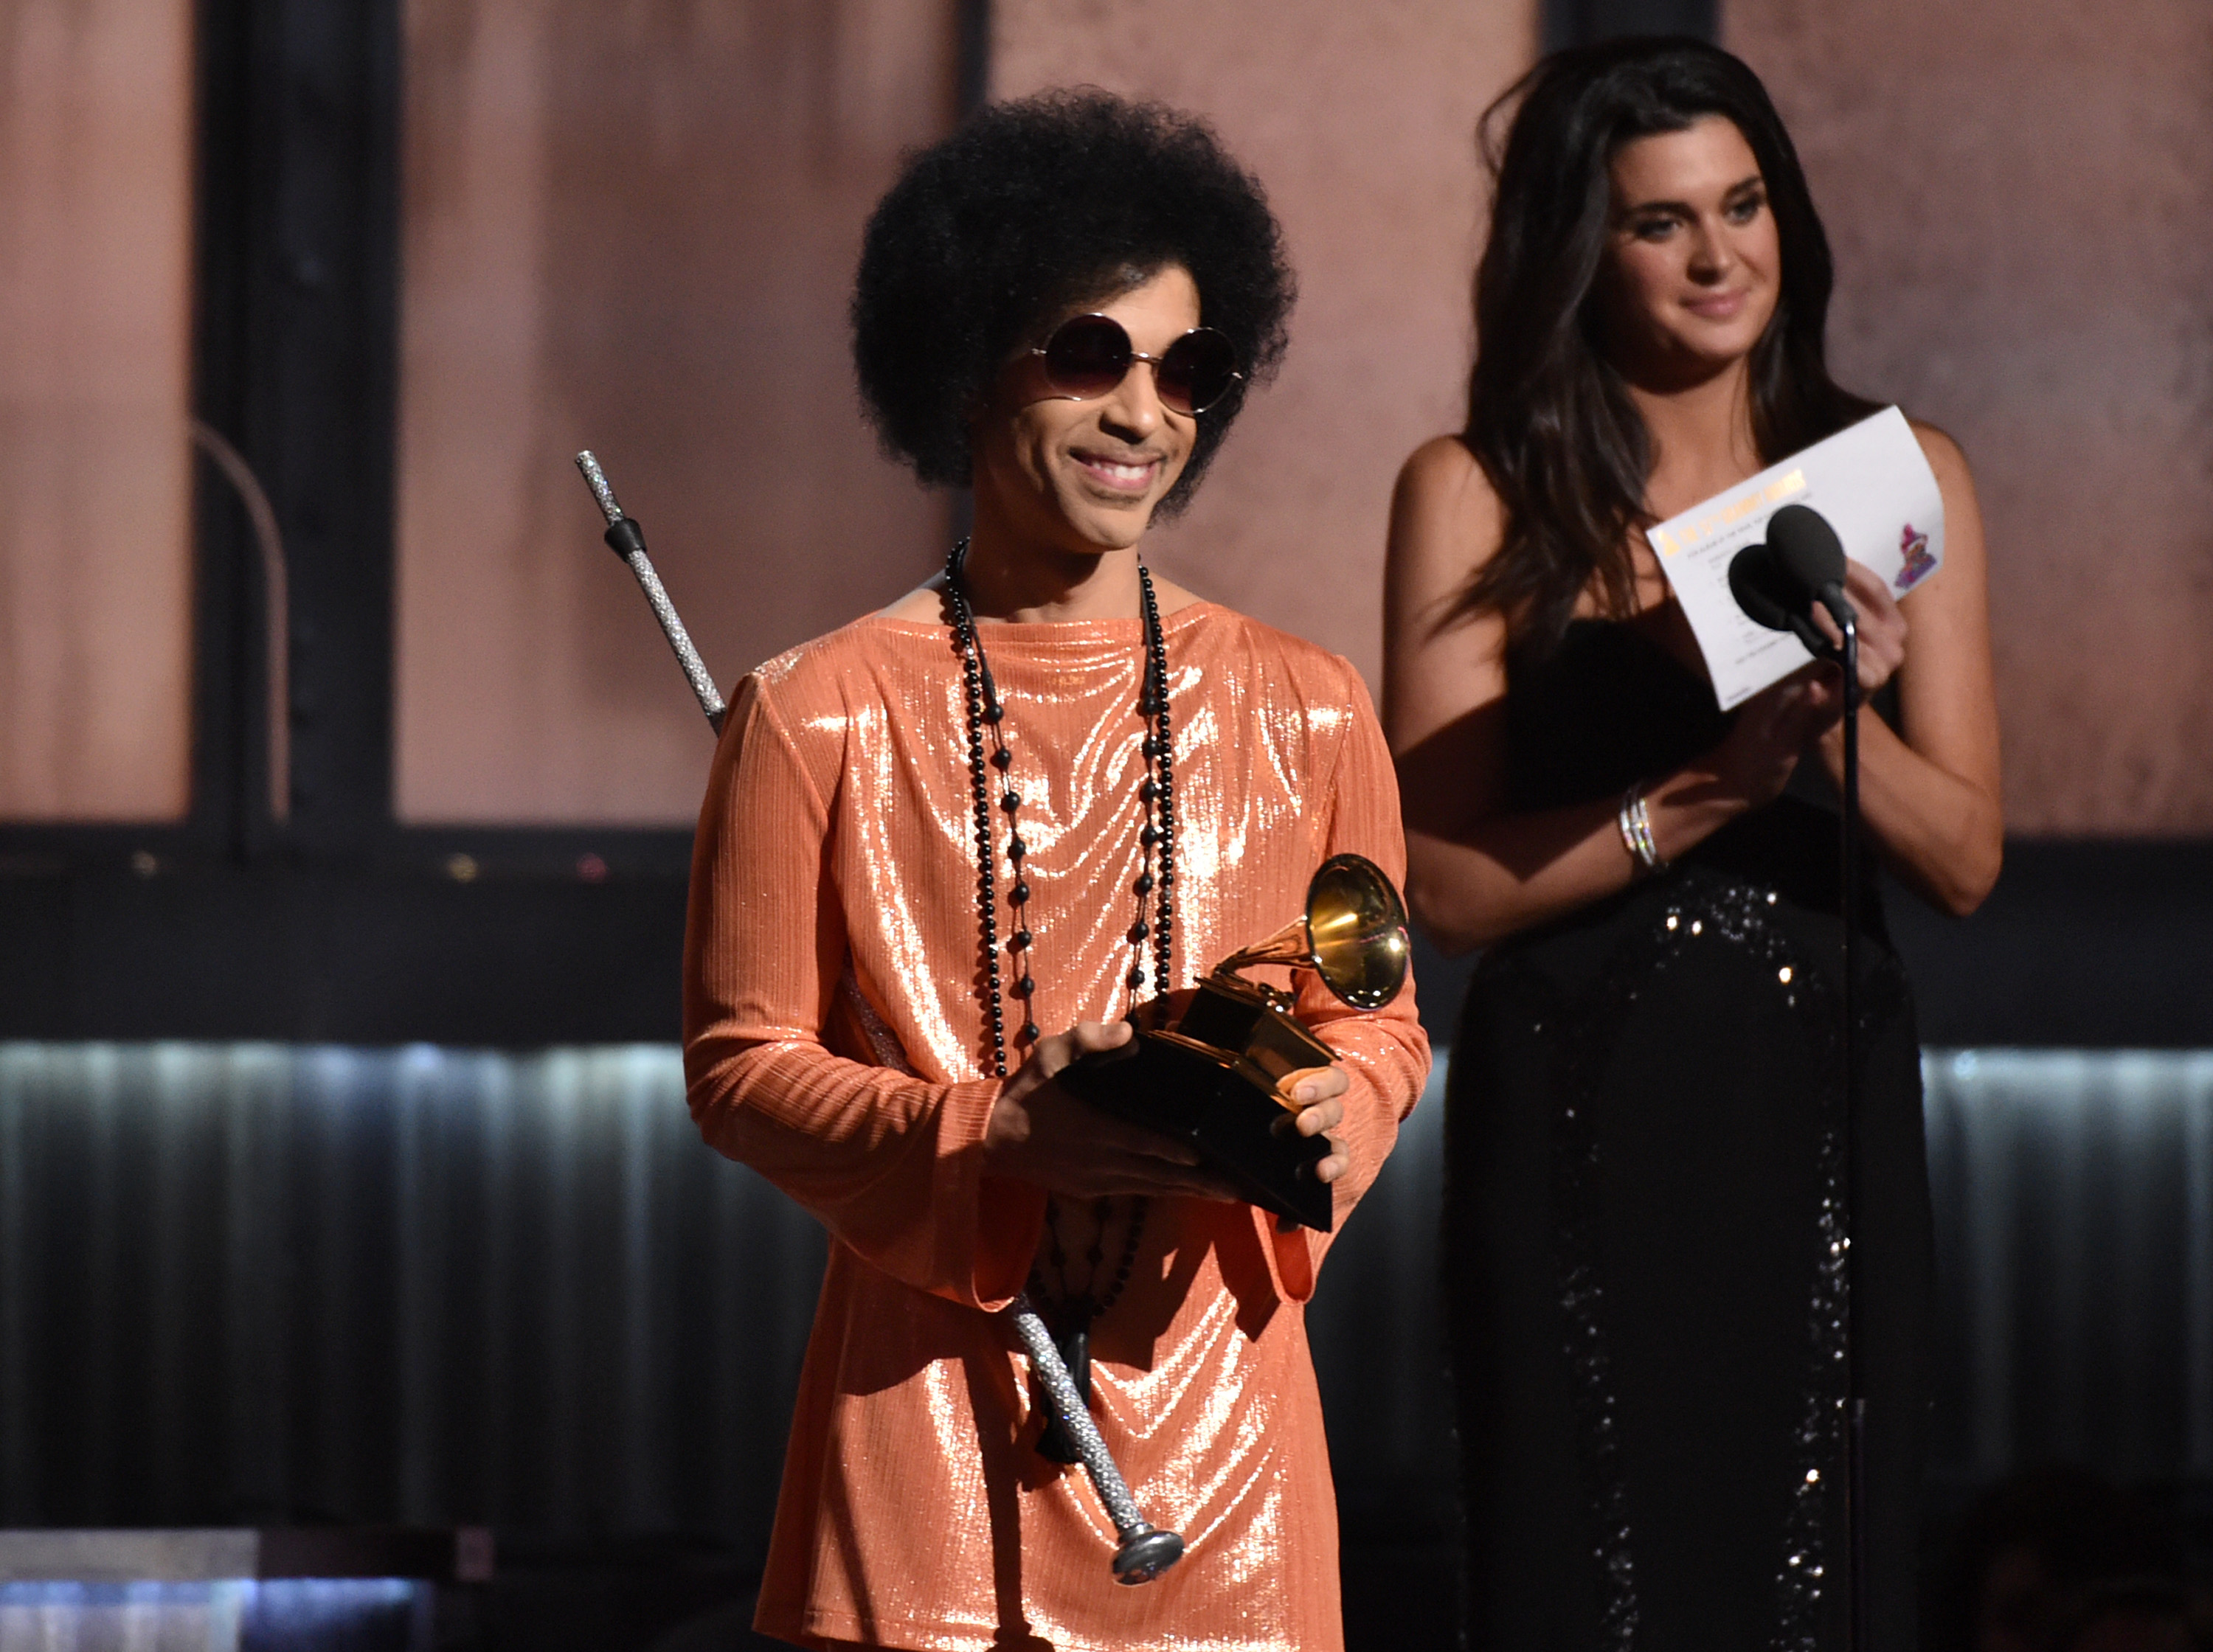 Prince releases 'Baltimore' song ahead of Sunday concert